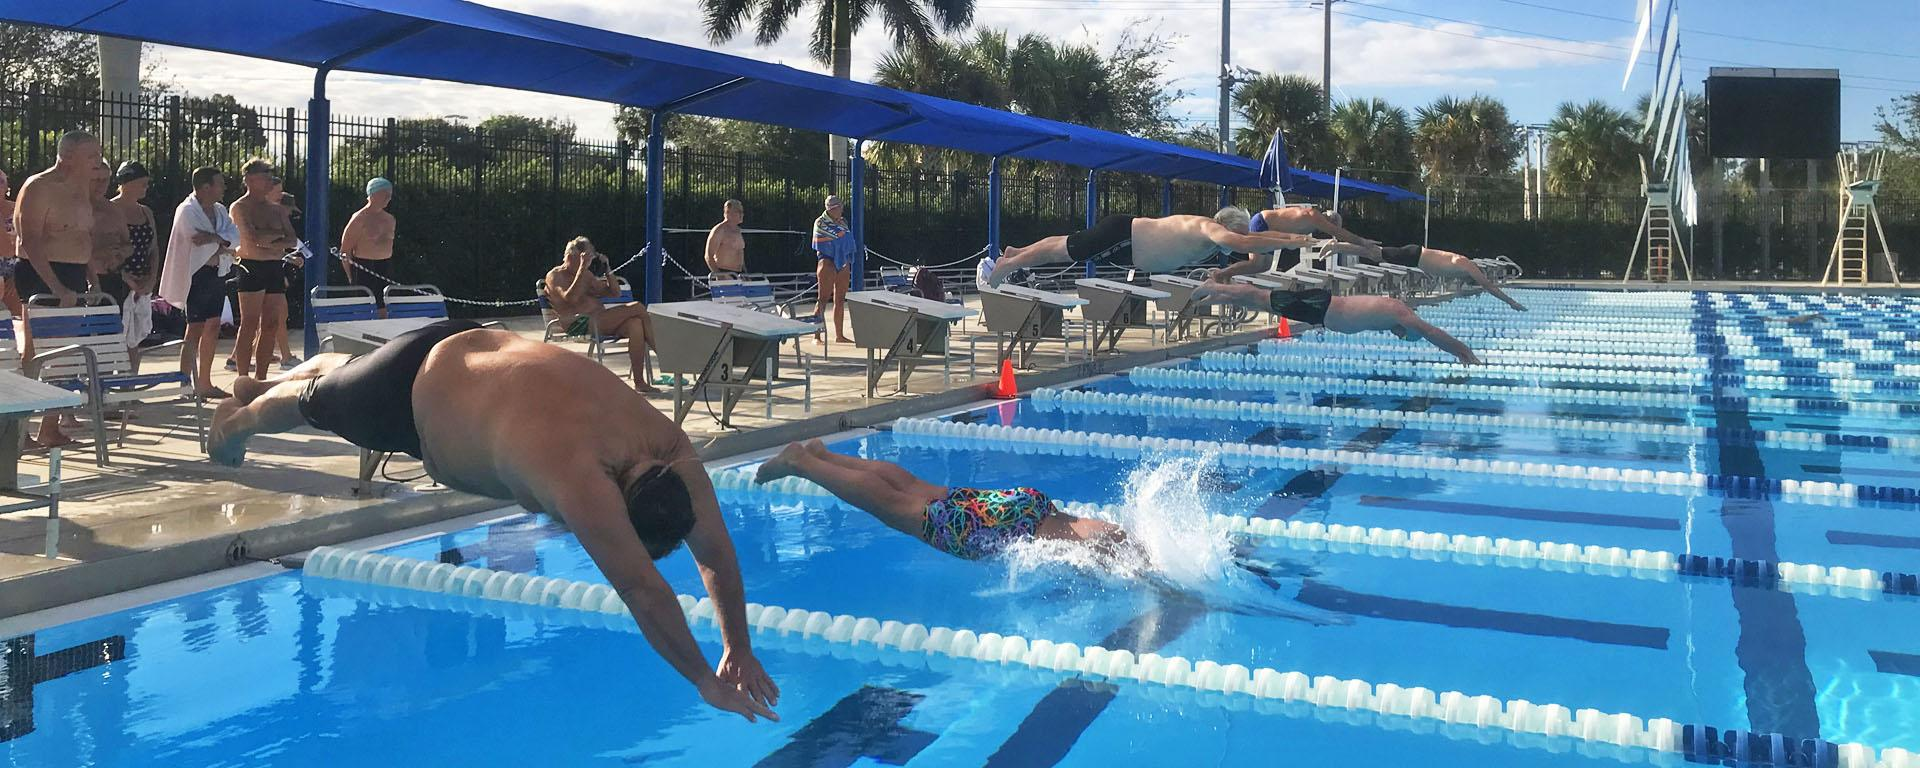 Martin County Senior Games participants diving into the swim races.